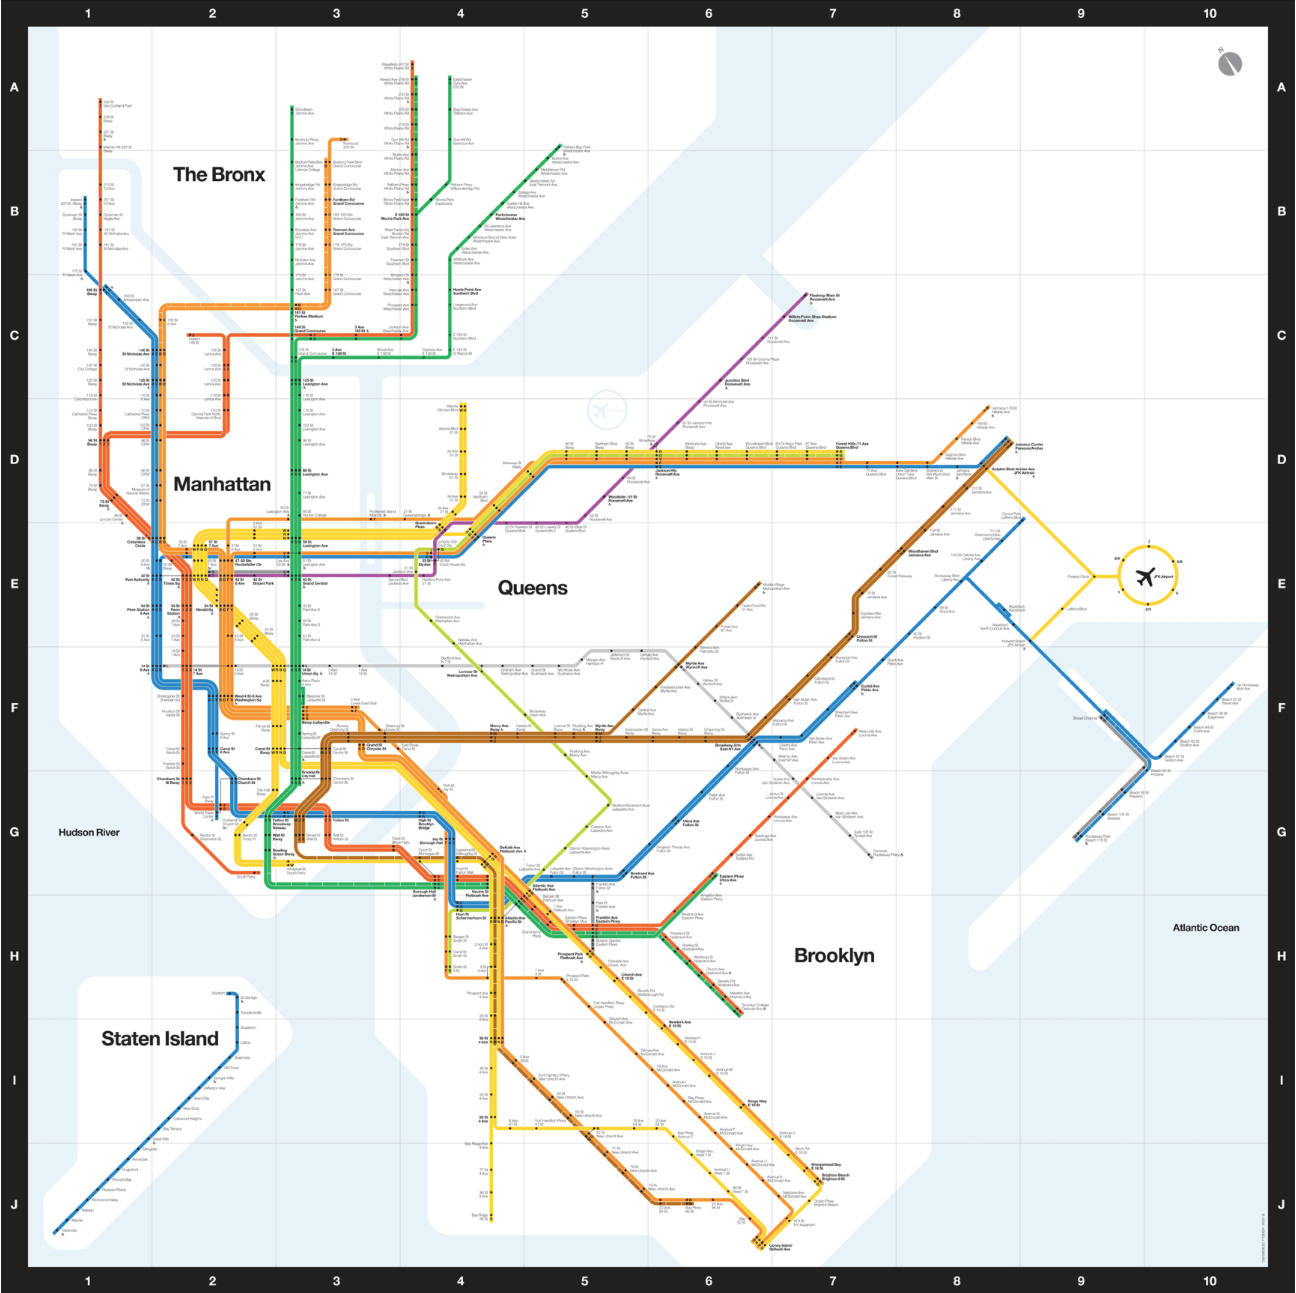 New York Subway Map G Line.Pin By Patrick On Massimo Vignelli Map Design Observer Subway Map